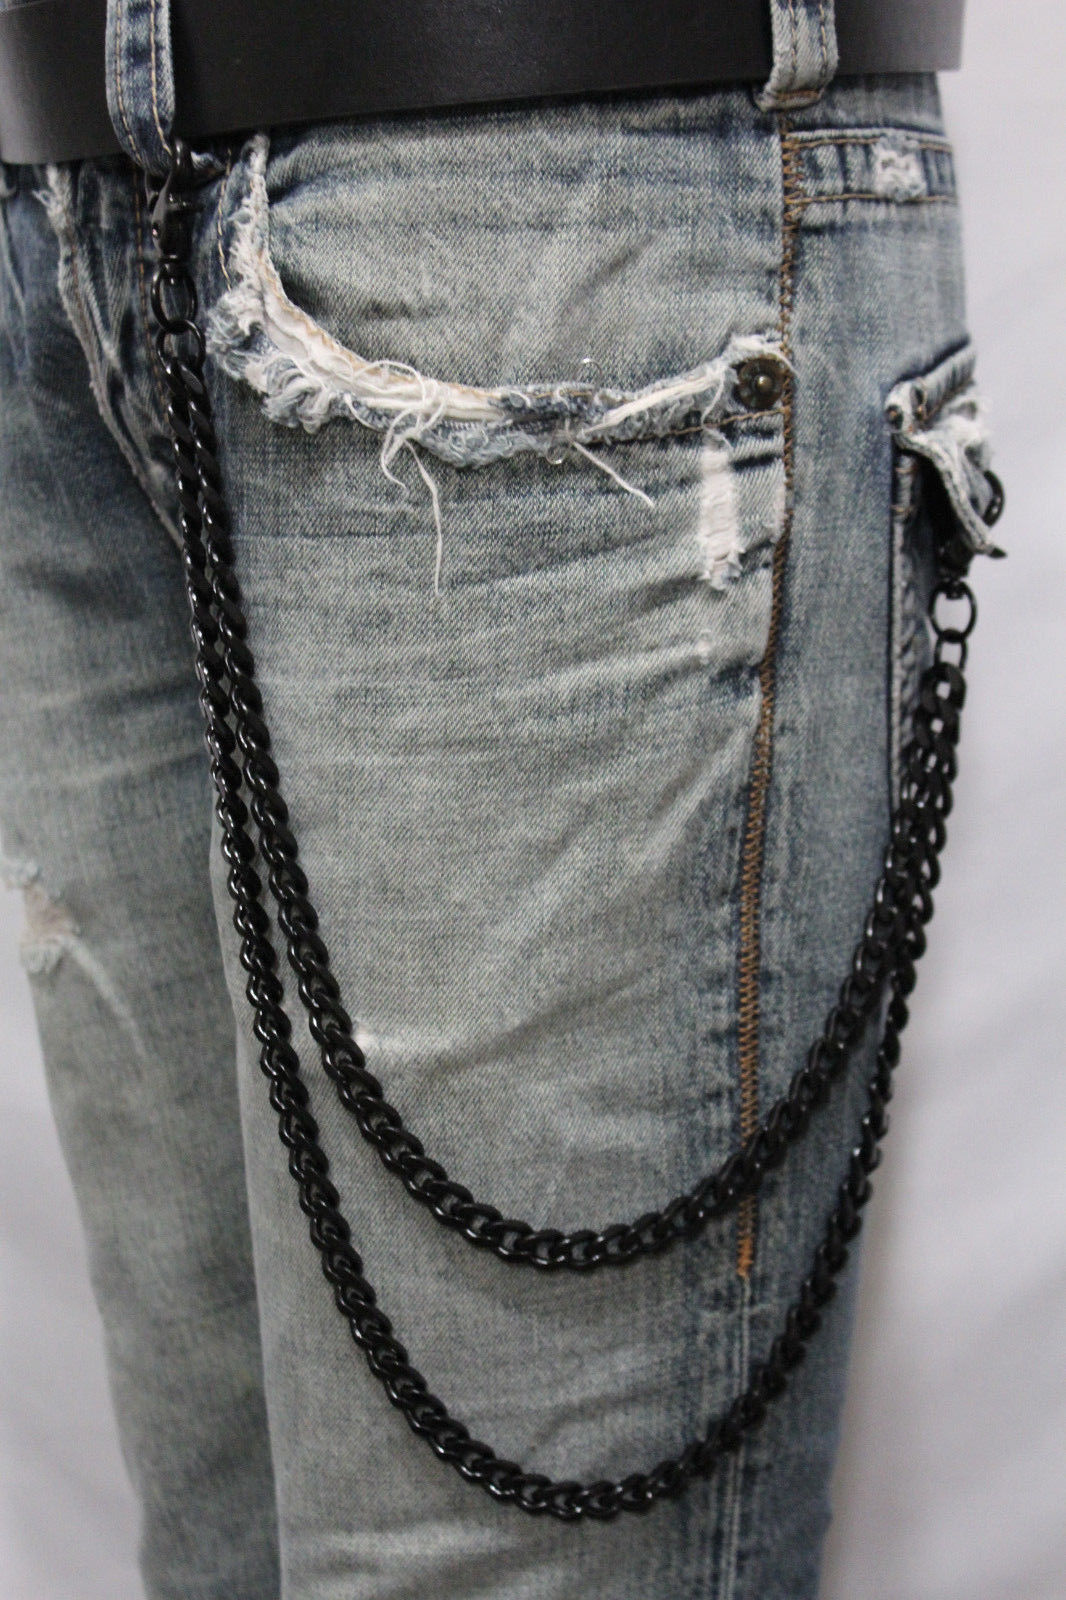 Men Black Long Wallet Chains Metal Links Keychain Jeans 2 Strands Chunky Biker Clothing Shoes Accessories Men S Accessories